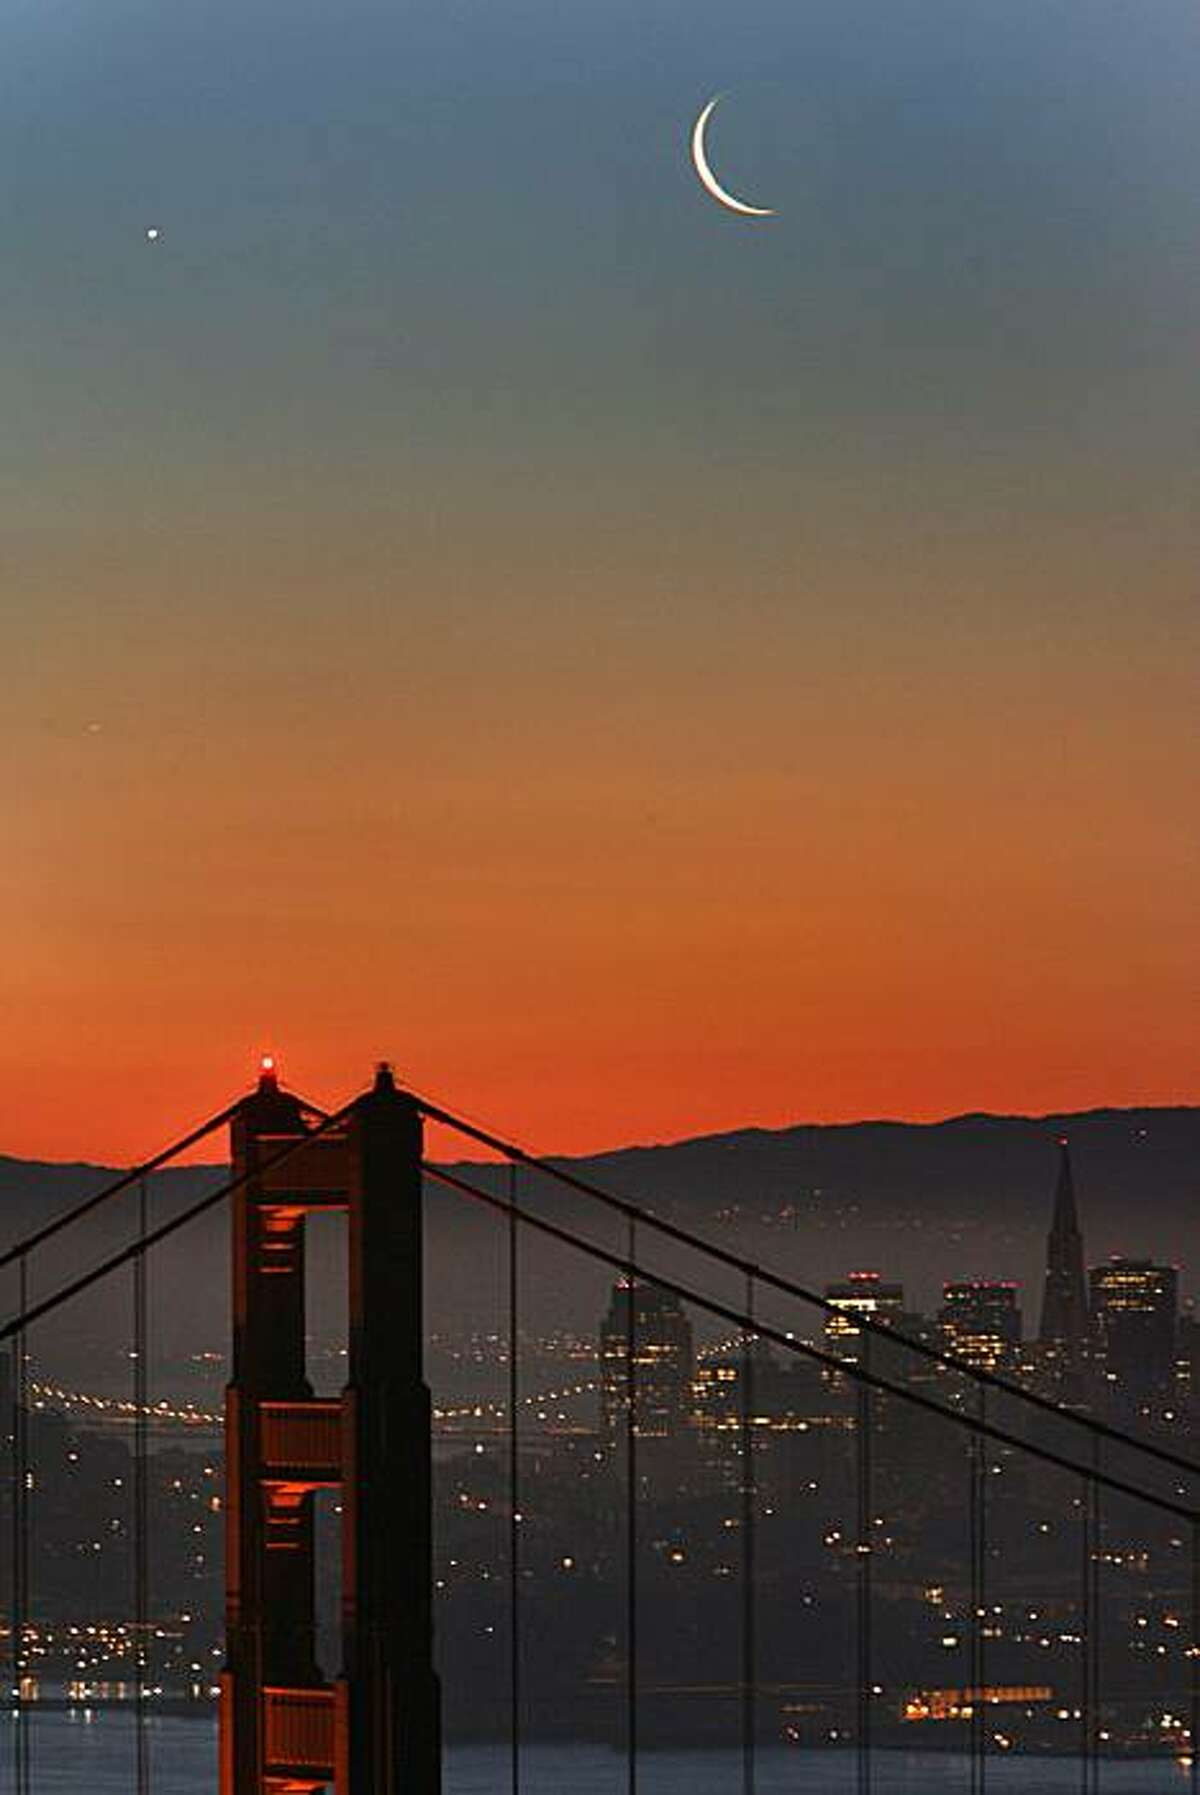 Seen from the Marin headlands rising over the north tower of the Golden Gate Bridge was both the crescent moon and the planet Venus pairing up within minutes of each other during the morning twilight on March 5, 2008. 3/5/08. {Photo by Frederic Larson / San Francisco Chronicle}